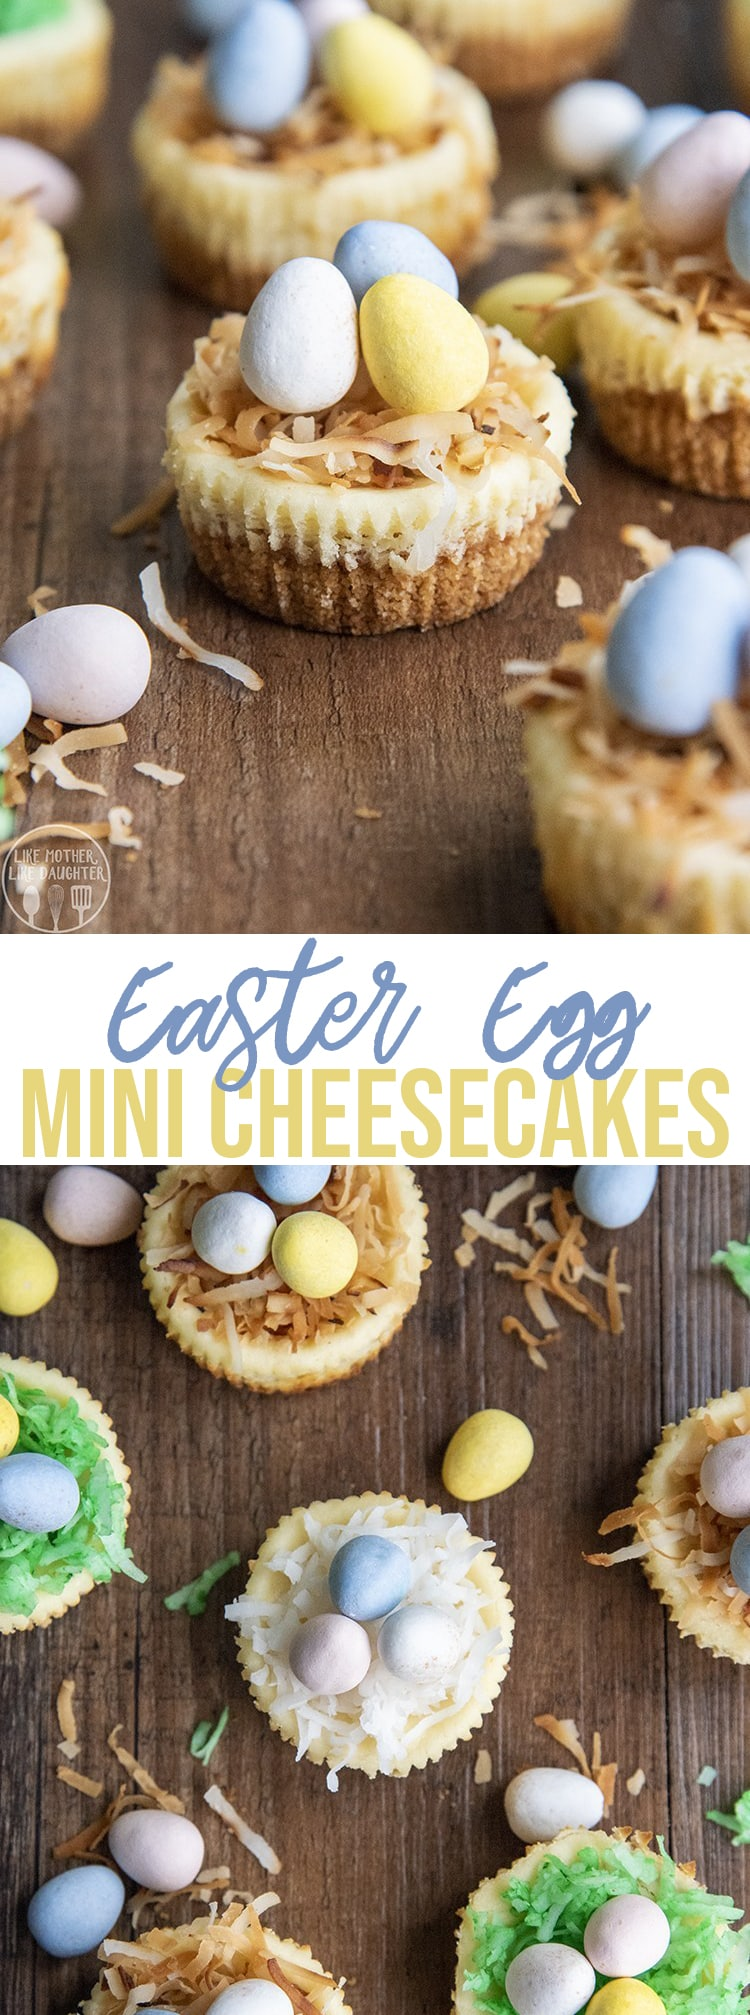 These Easter Egg Mini Cheesecakes are adorable mini cheesecakes topped with shredded coconut and mini egg candies for the perfect cute Bird Nest Easter dessert! #Easter #Cheesecake #BirdNest #EasterEgg #EasterDinner